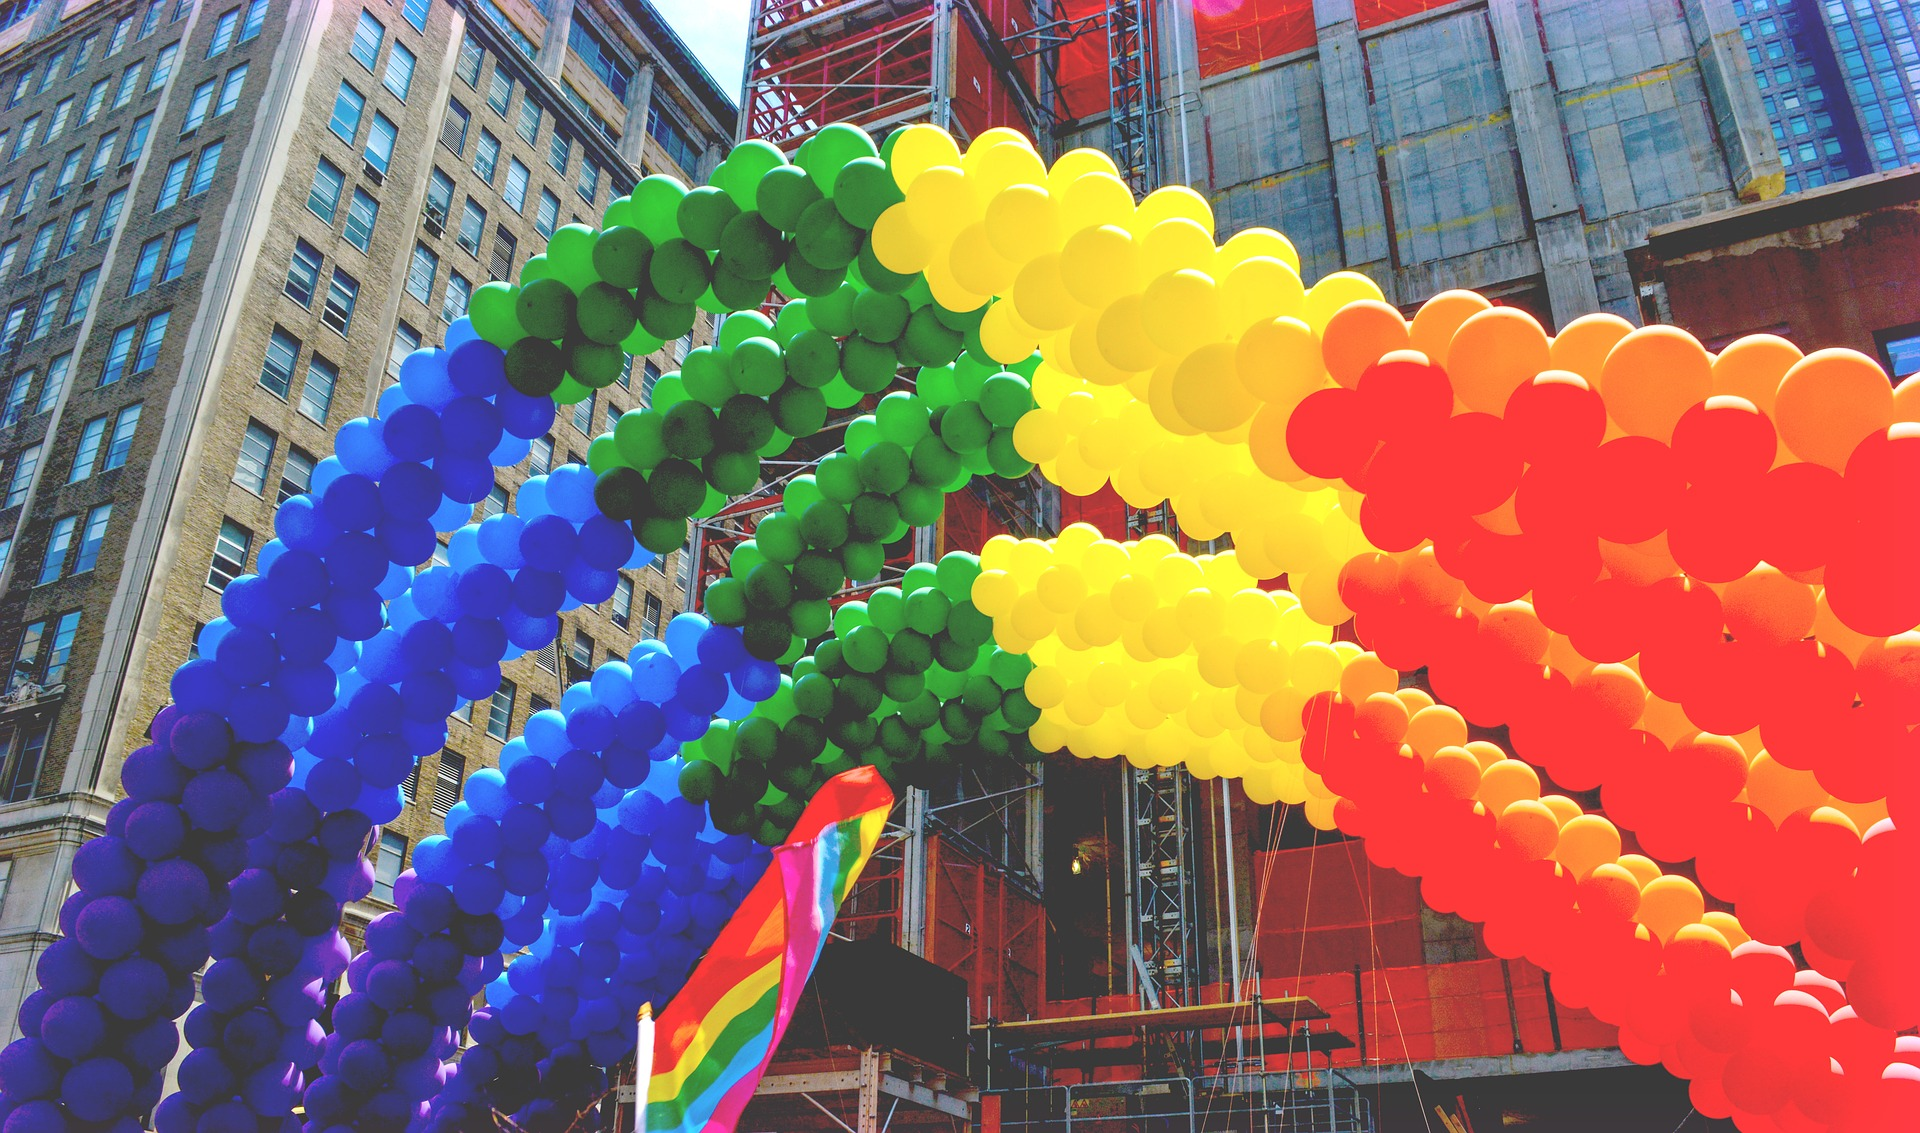 Image of rainbow balloon arch over a pride flag. Skyscrapers are in the background.